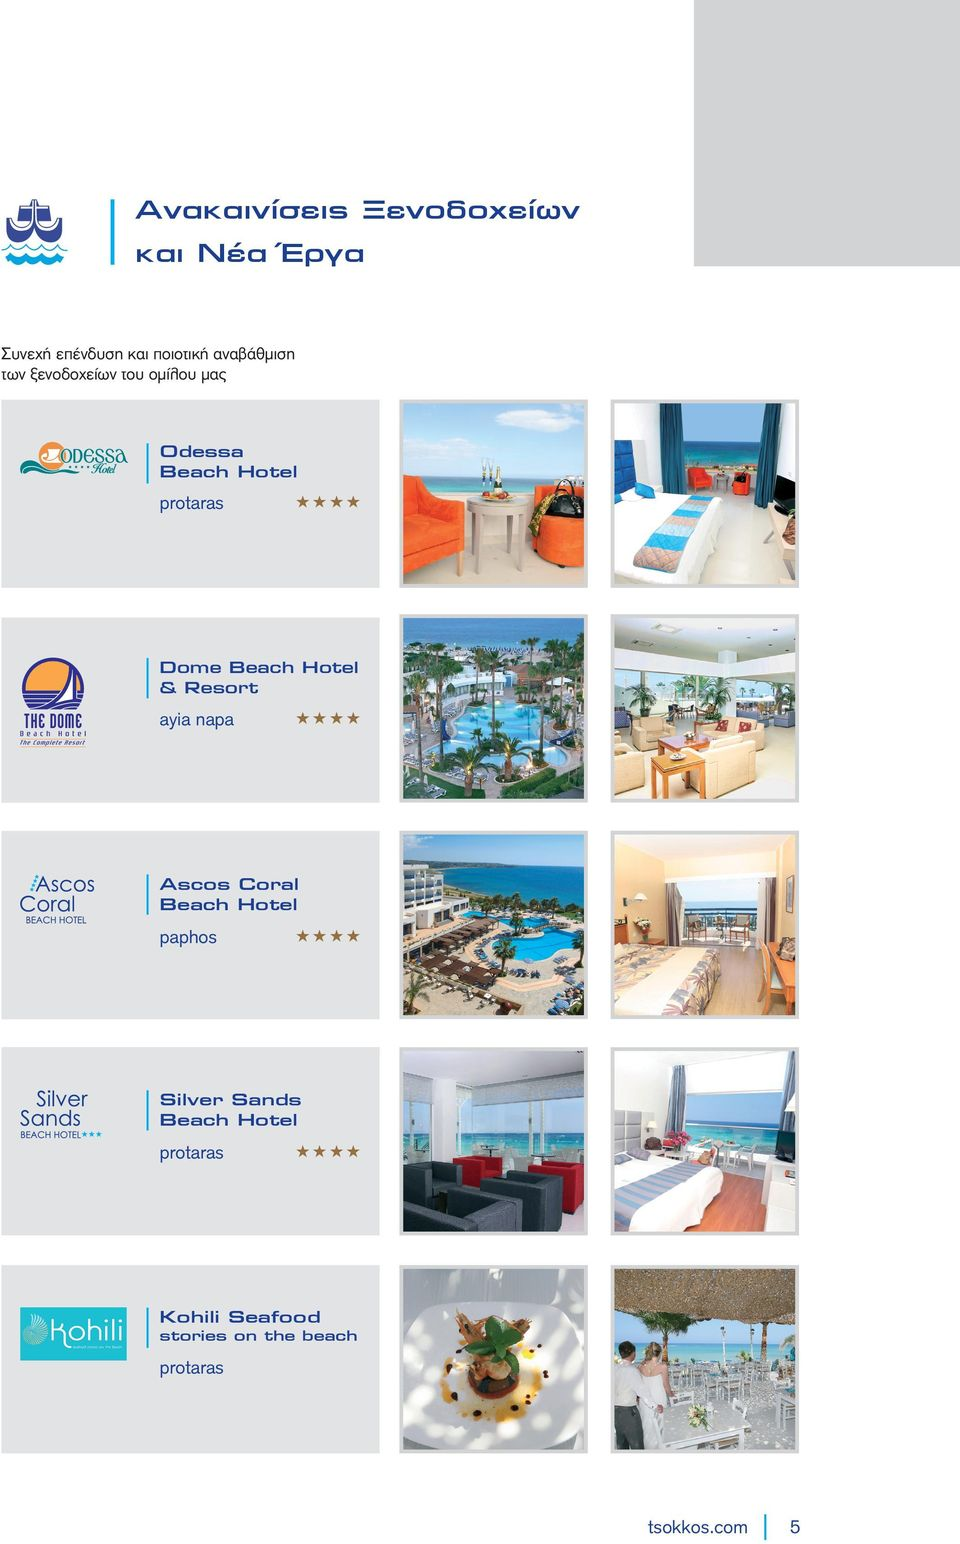 Dome Beach Hotel & Resort ayia napa Ascos Coral Beach Hotel paphos Silver